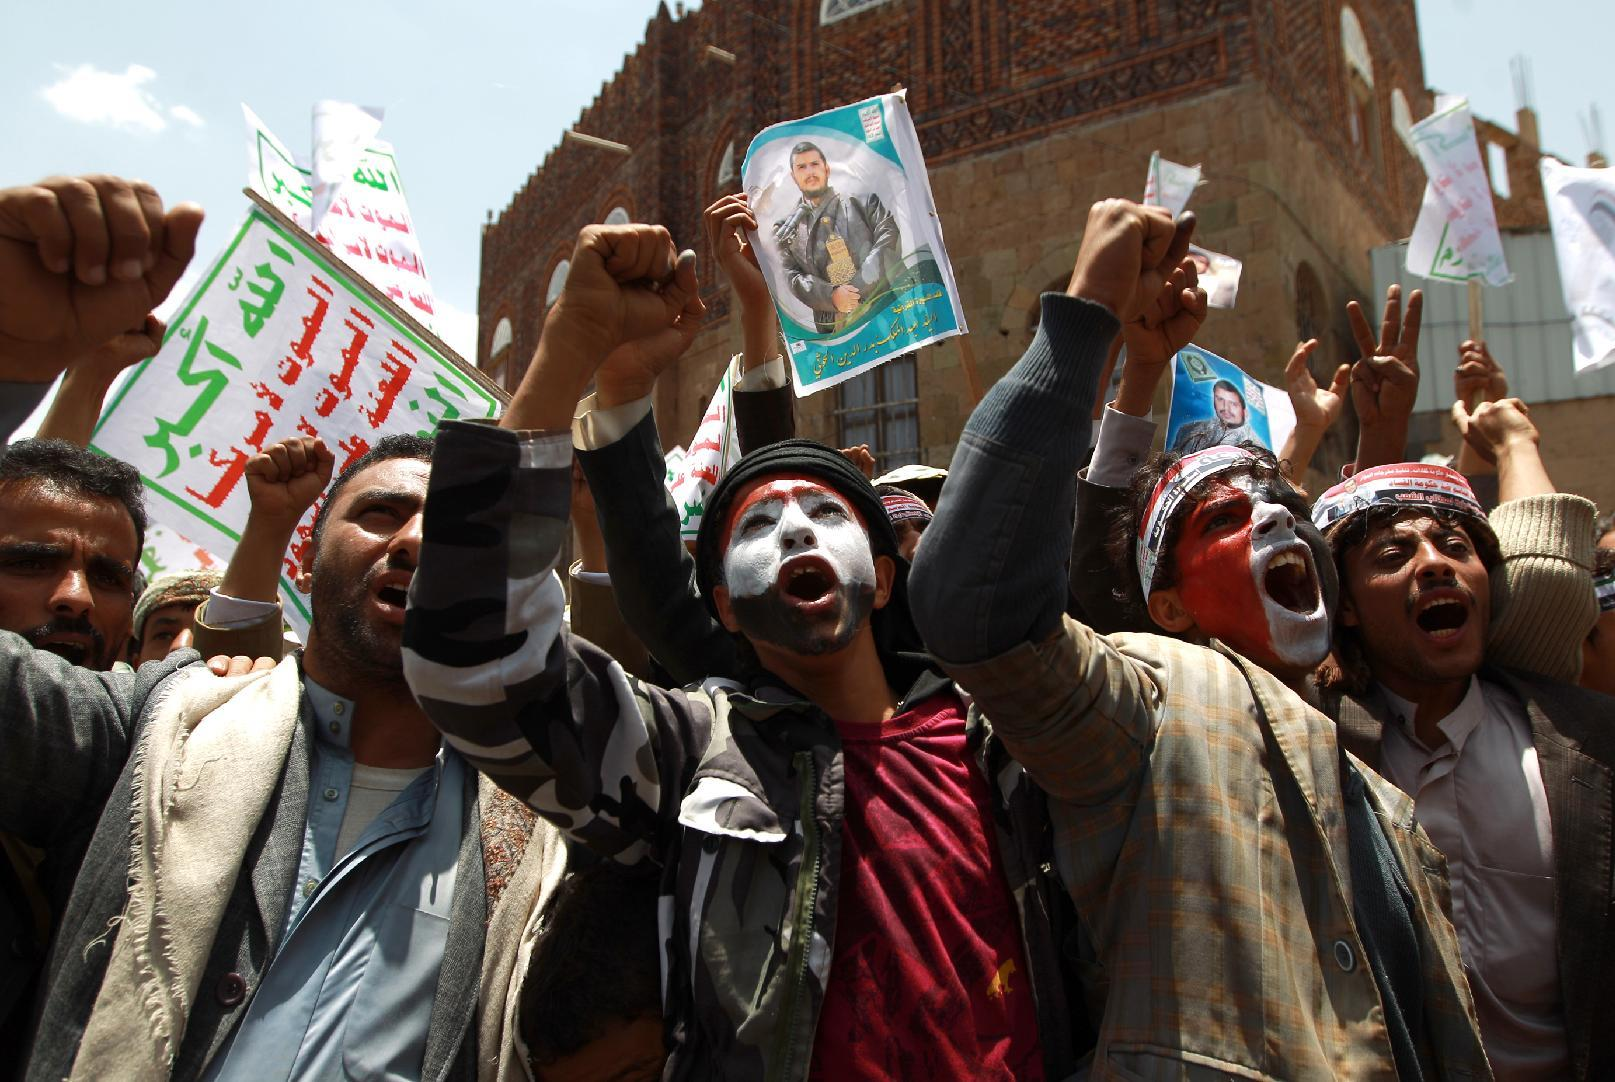 Supporters of the Shiite Huthi movement shout slogans during an anti-government demonstration in Sanaa on September 3, 2014 (AFP Photo/Mohammed Huwais)